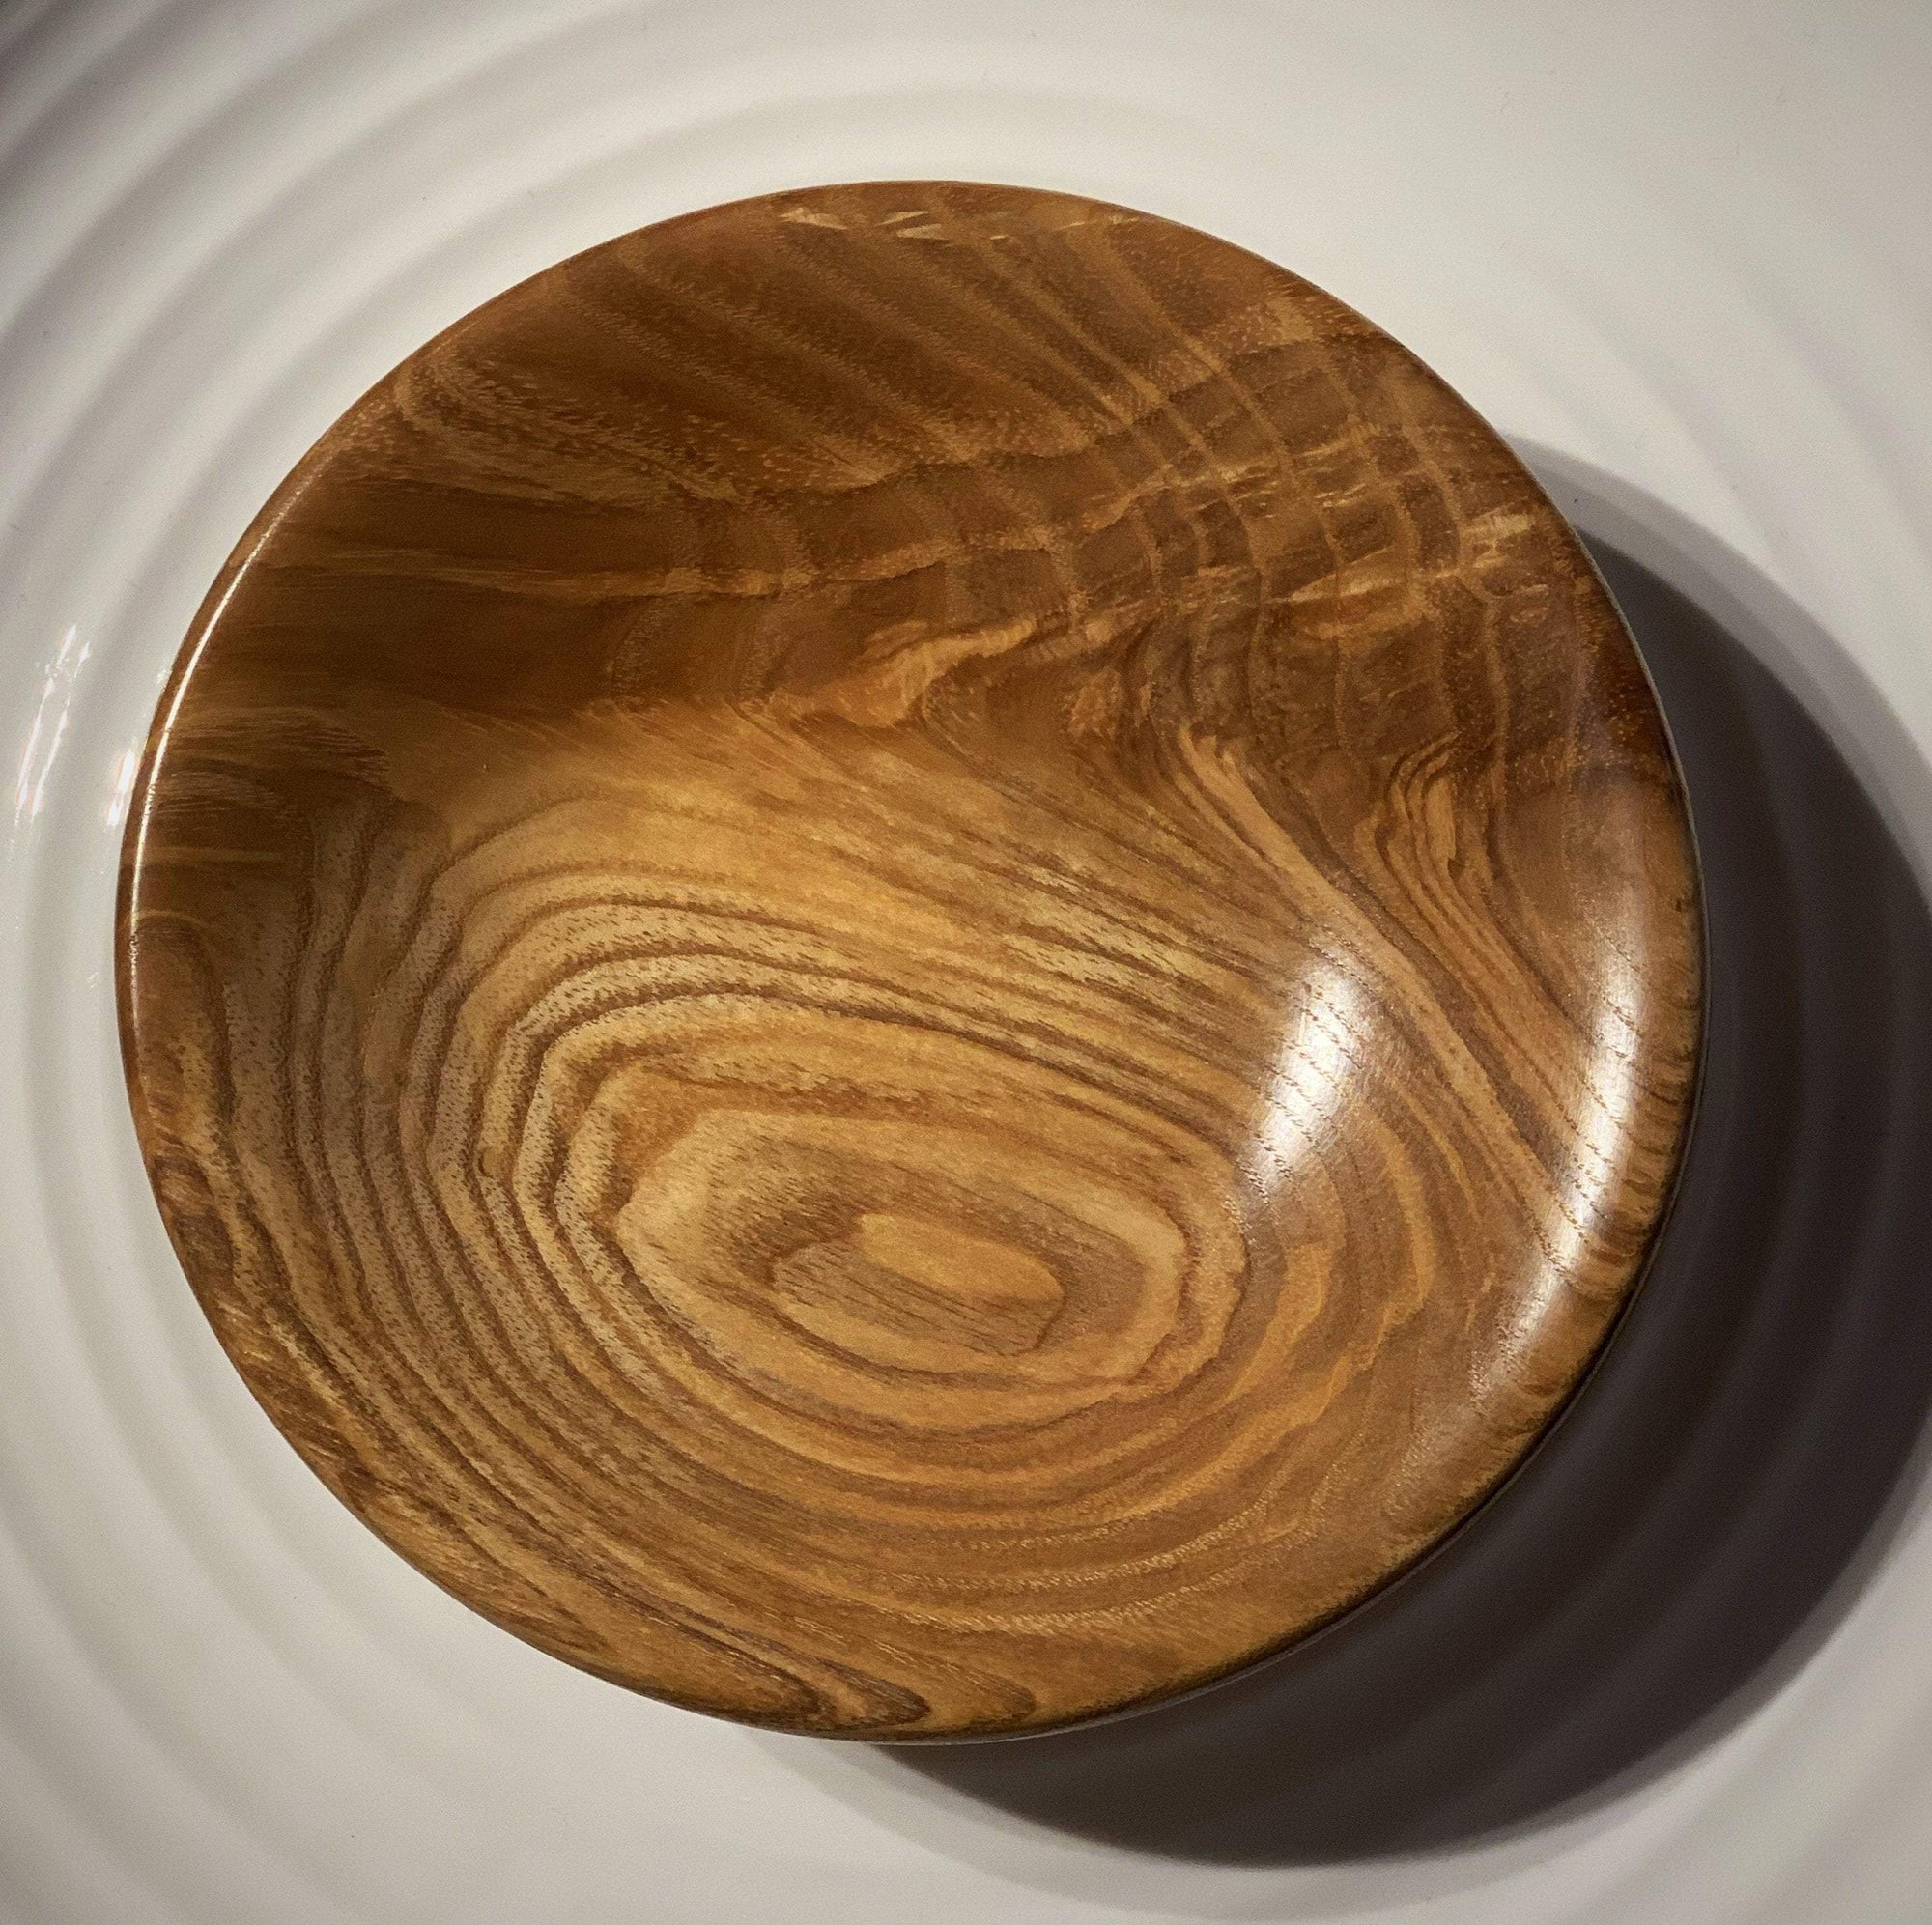 Hand-Turned Wooden Magnetic Bowl - Ash tribeyarns Other Stuff